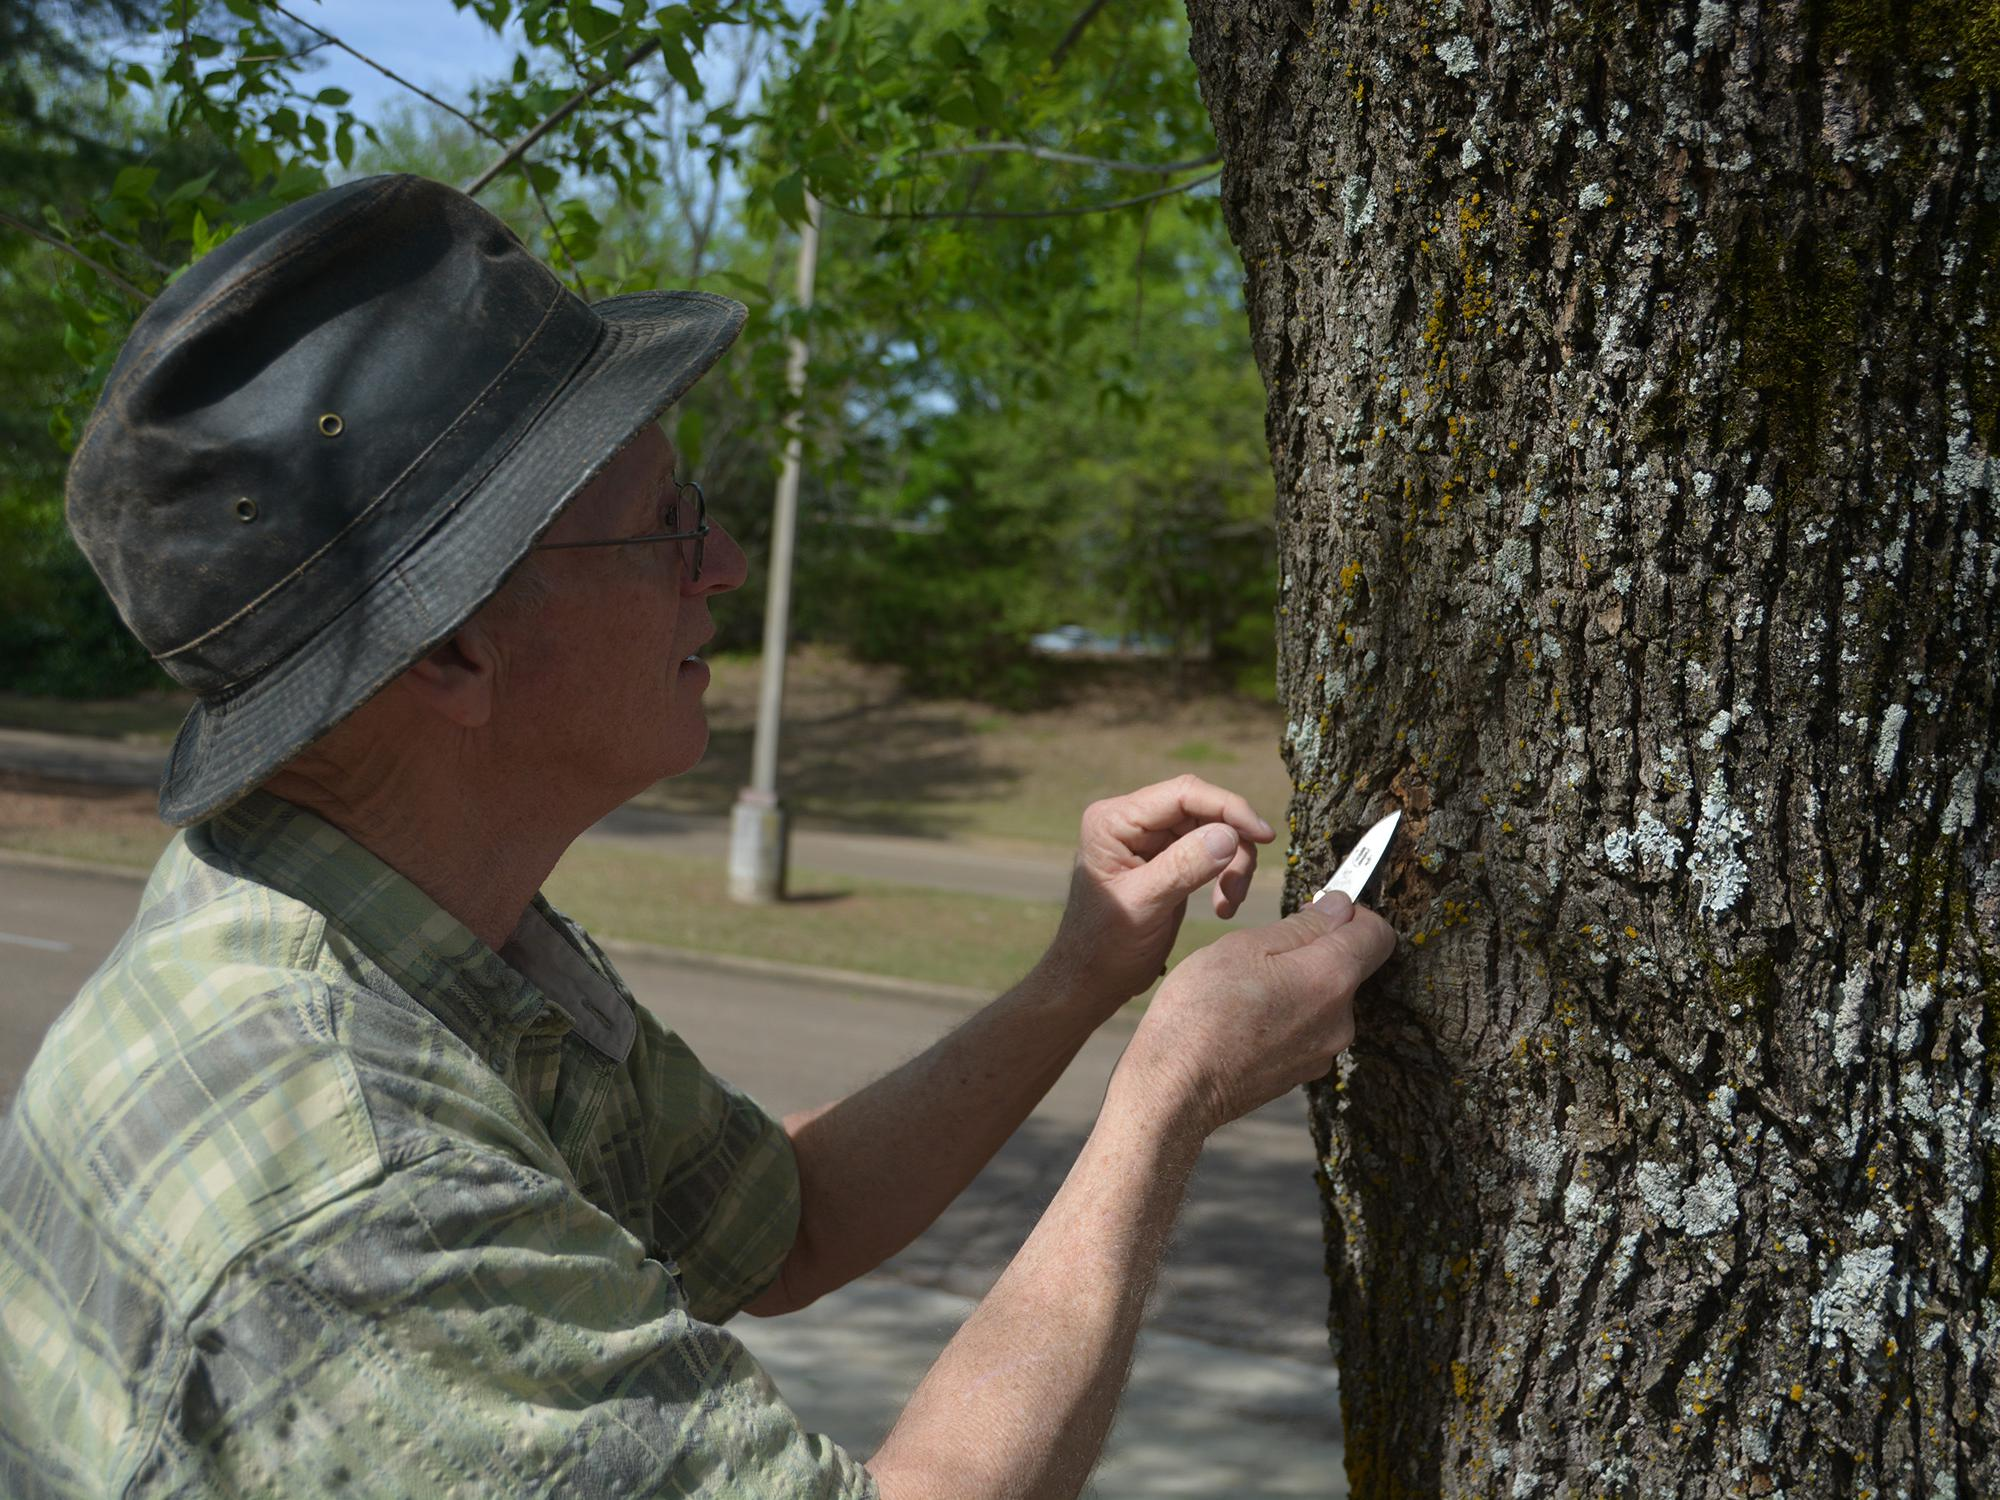 A man wearing a hat holds a pocketknife in his hand as he looks closely at a tree trunk.